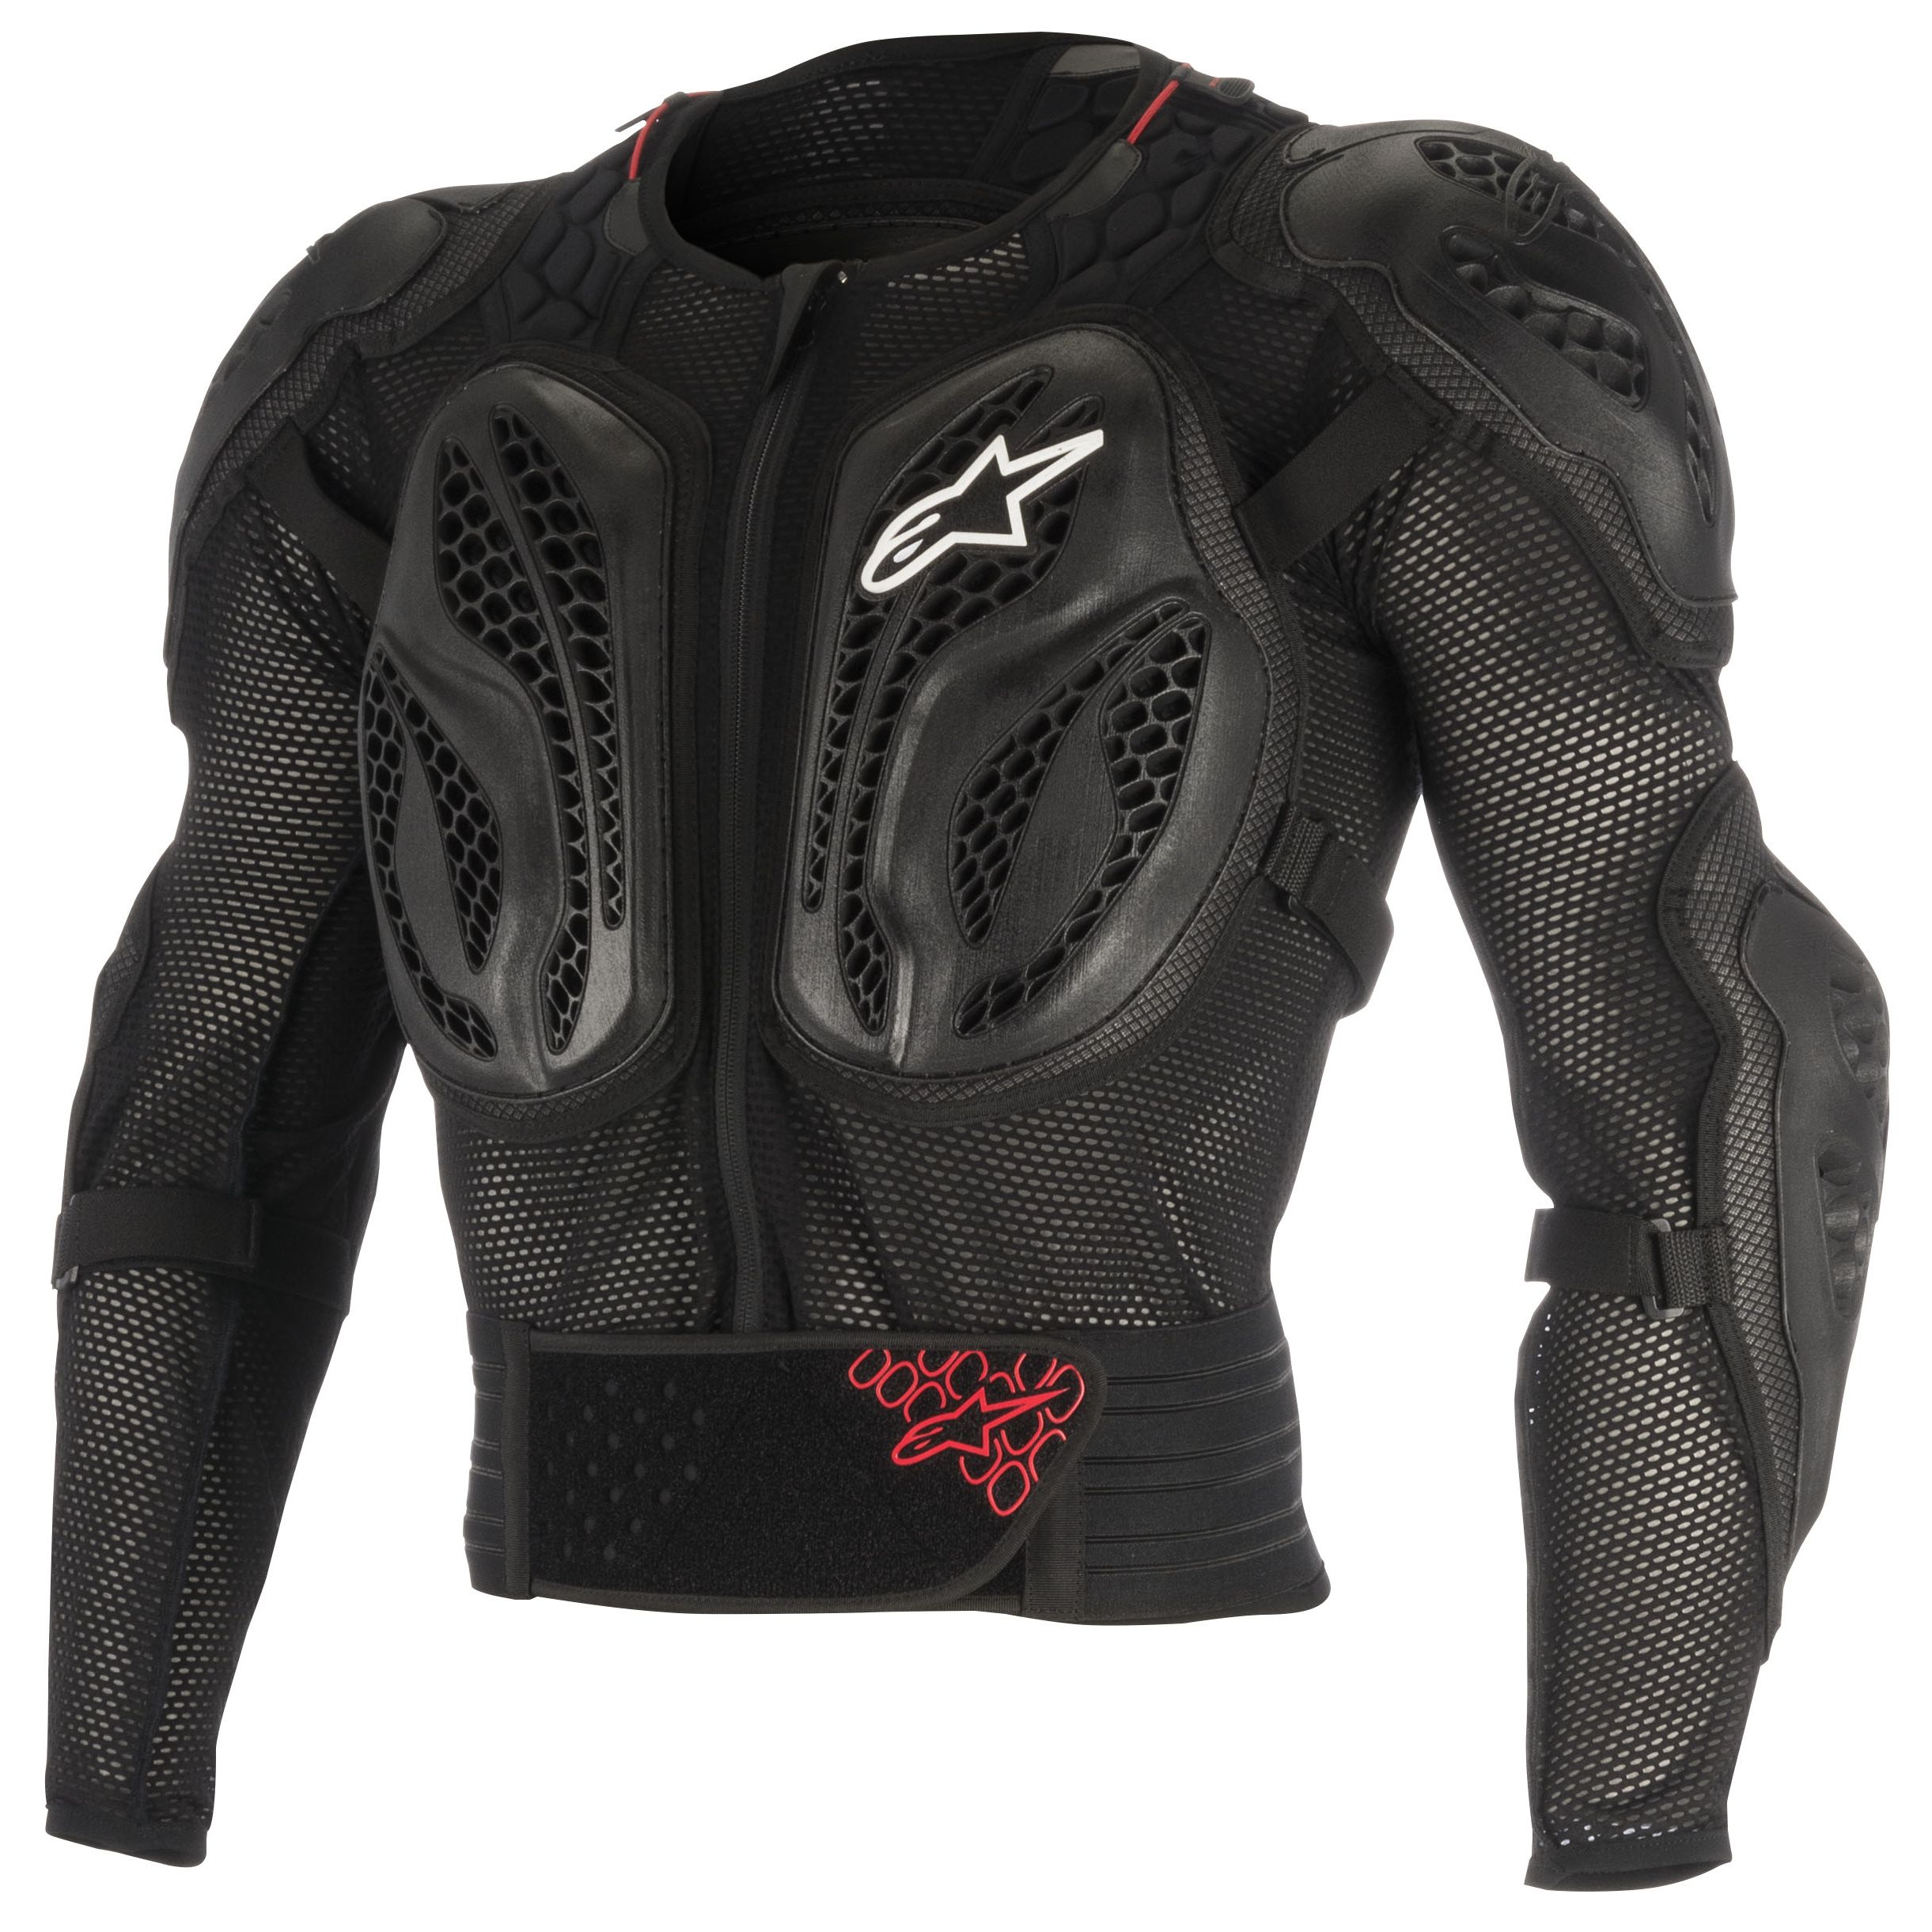 gilet alpinestars bionic action 2018 protection et accessoires cross. Black Bedroom Furniture Sets. Home Design Ideas